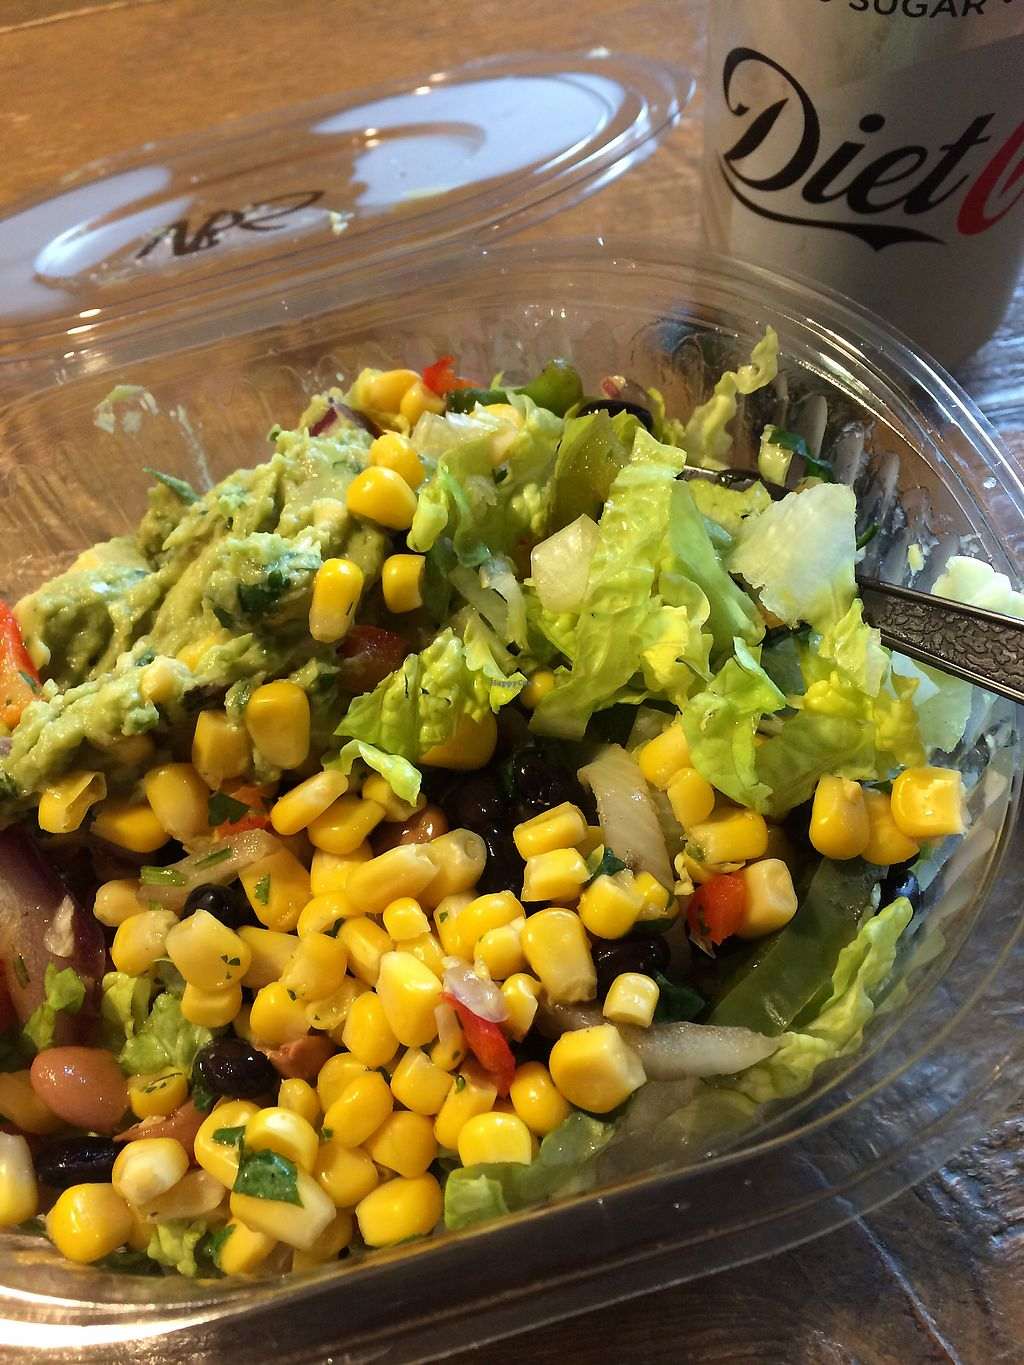 "Photo of Boojum - Botanic Ave  by <a href=""/members/profile/CiaraSlevin"">CiaraSlevin</a> <br/>Salad Bowl lunch - lettuce, onions, peppers, black beans, pinto beans, sweet corn salsa, guacamole.  <br/> January 27, 2018  - <a href='/contact/abuse/image/21352/351500'>Report</a>"